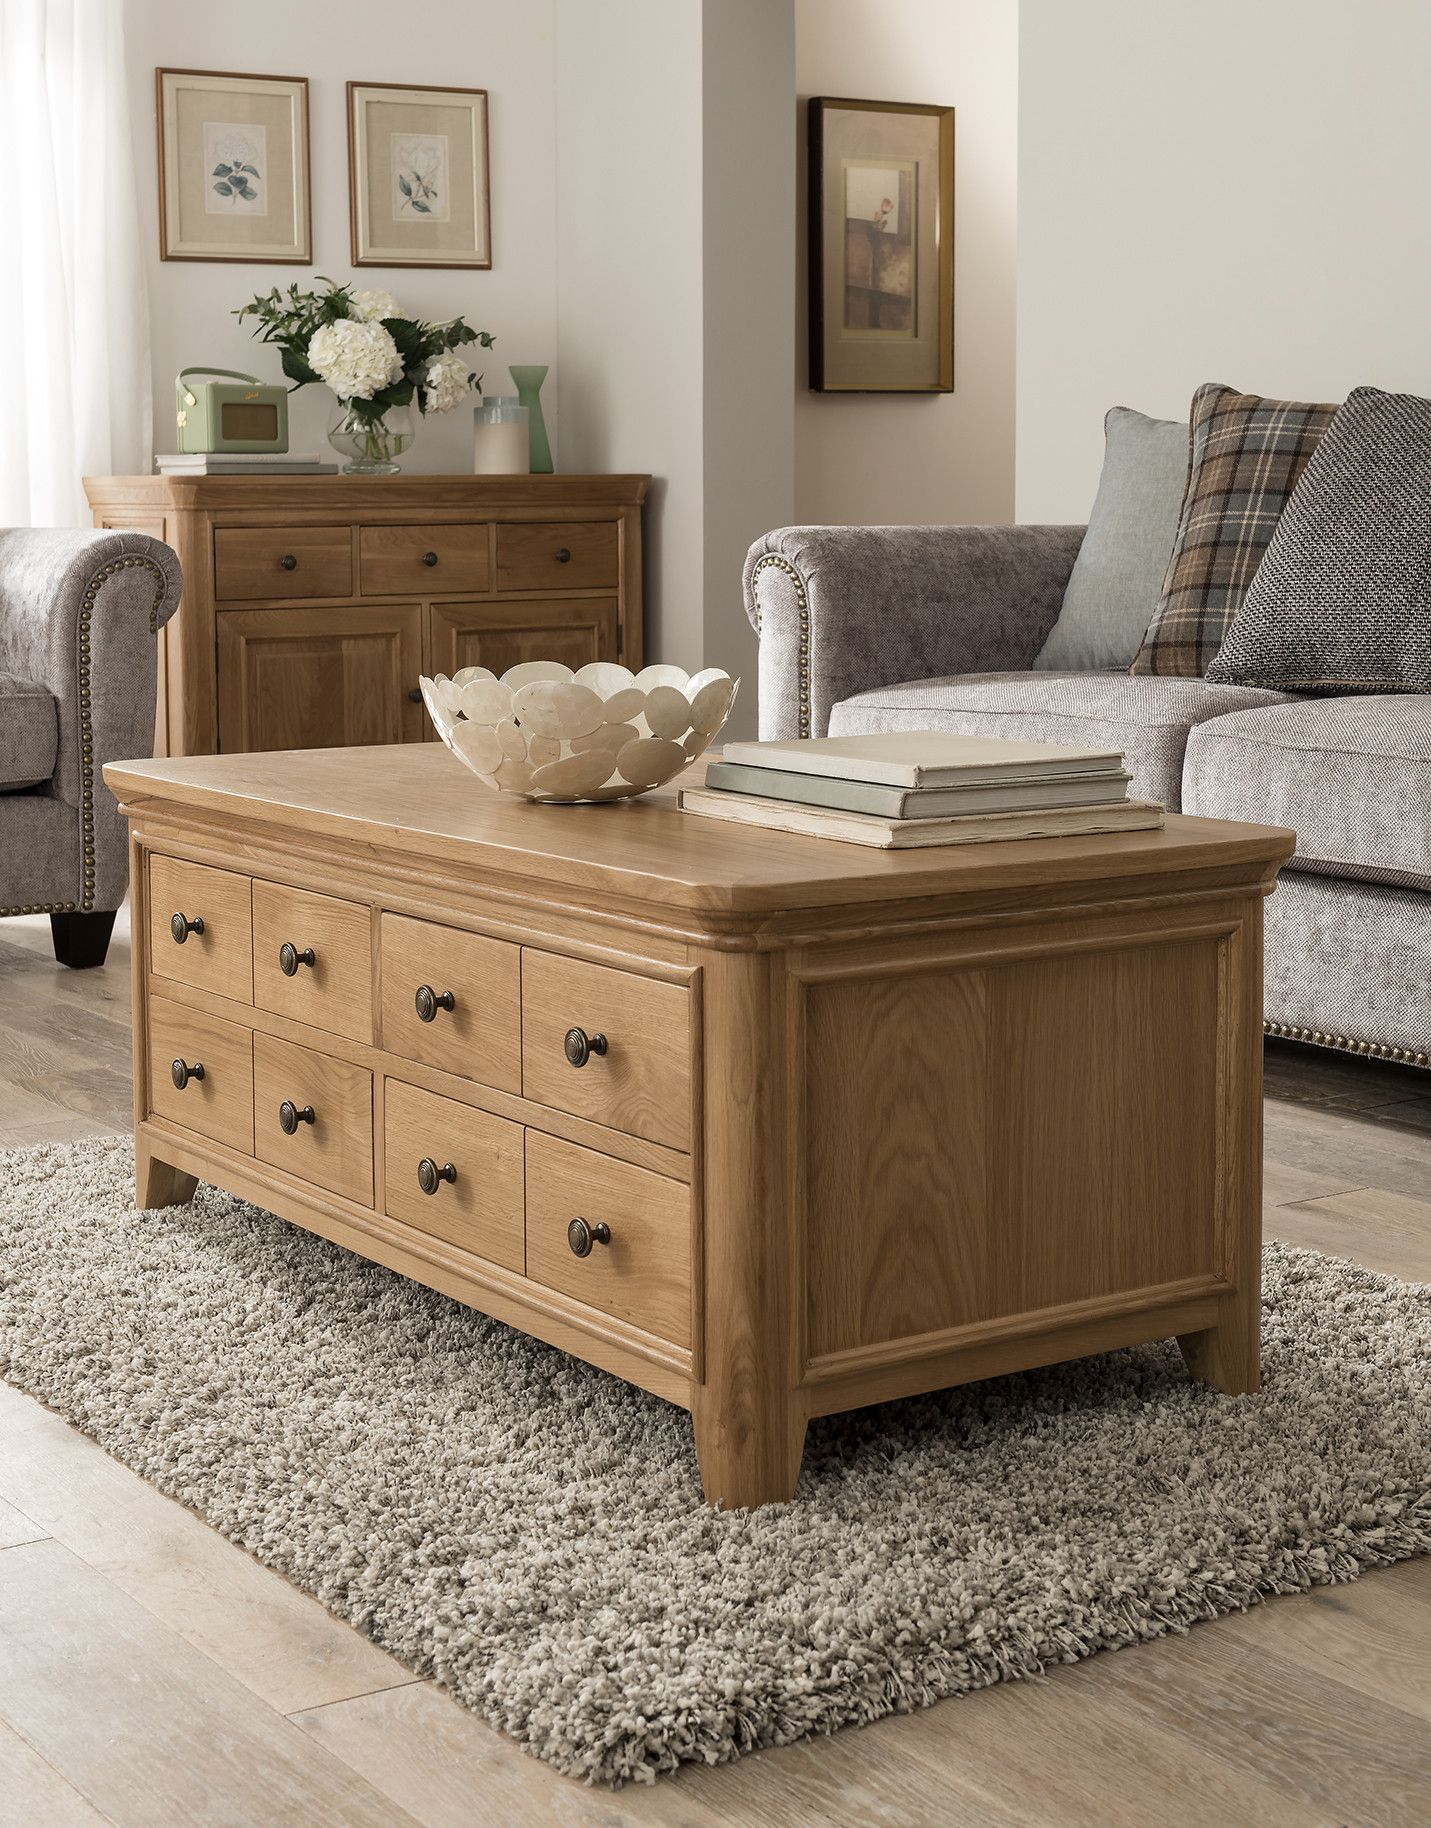 Carmen Solid Oak Coffee Table With Drawers Solid Oak Coffee Table Oak Furniture Living Room Coffee Table With Drawers